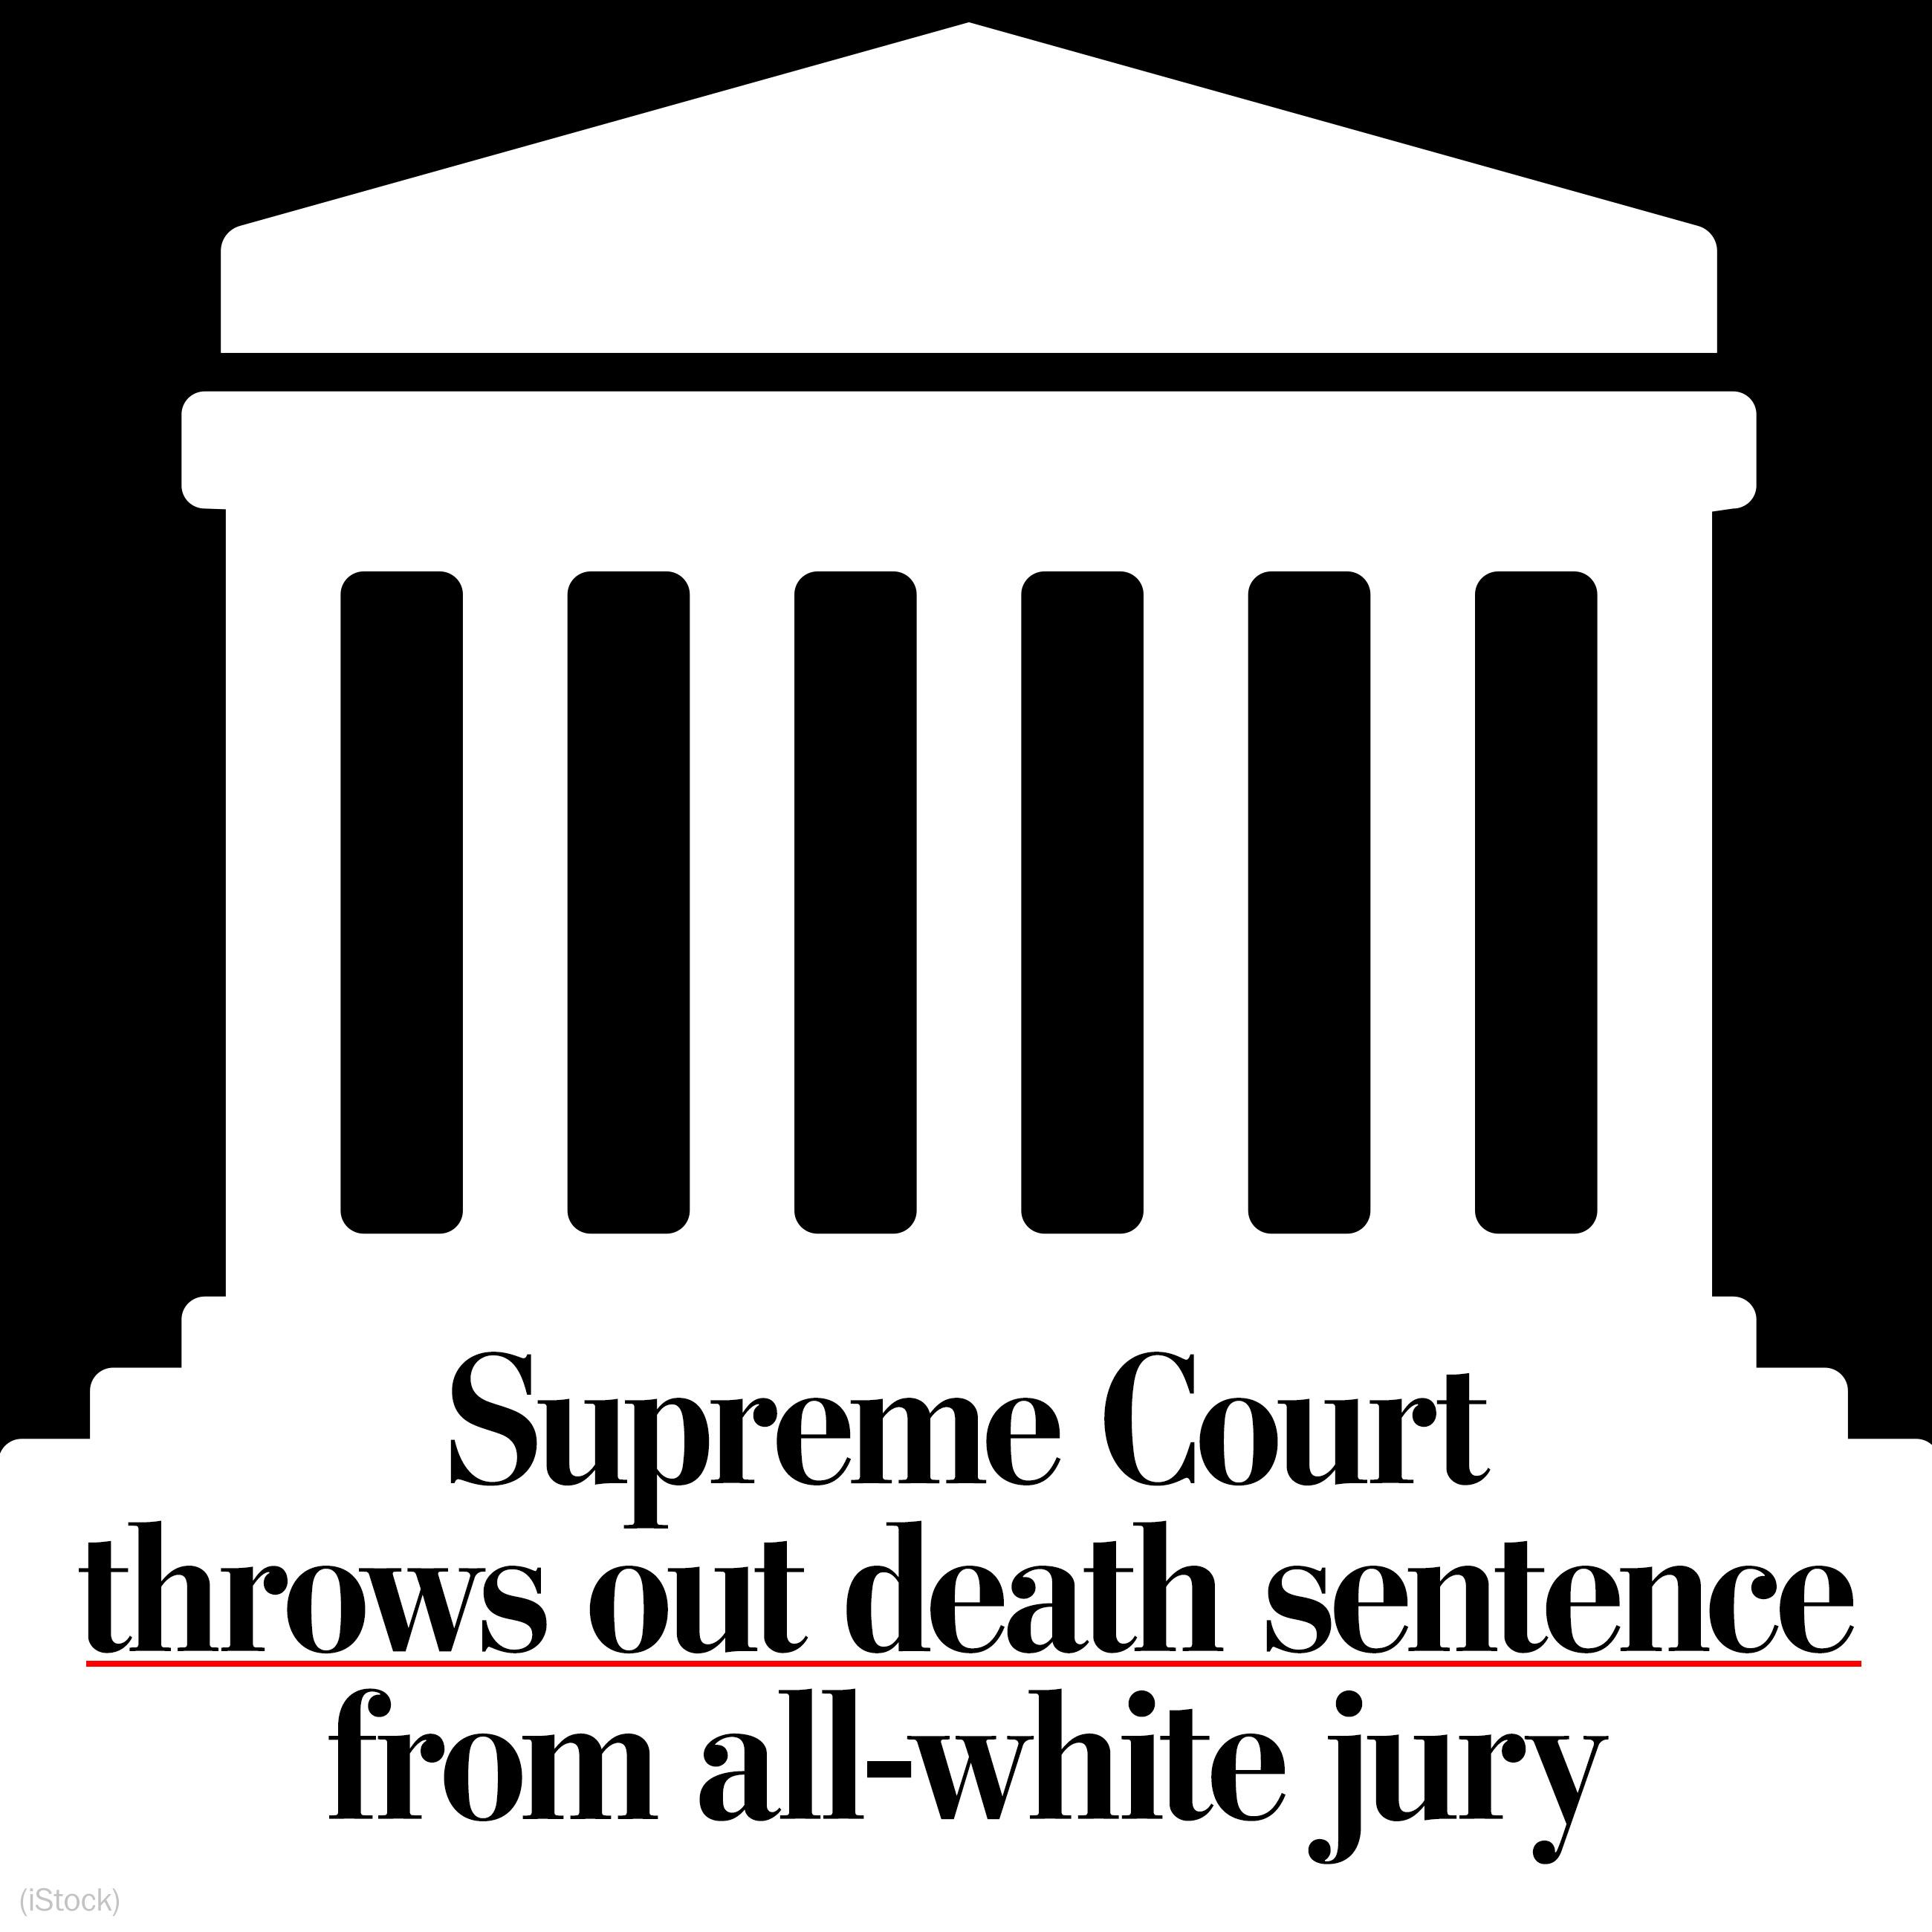 Supreme Court finds bias in jury selection in condemned Georgia man's case